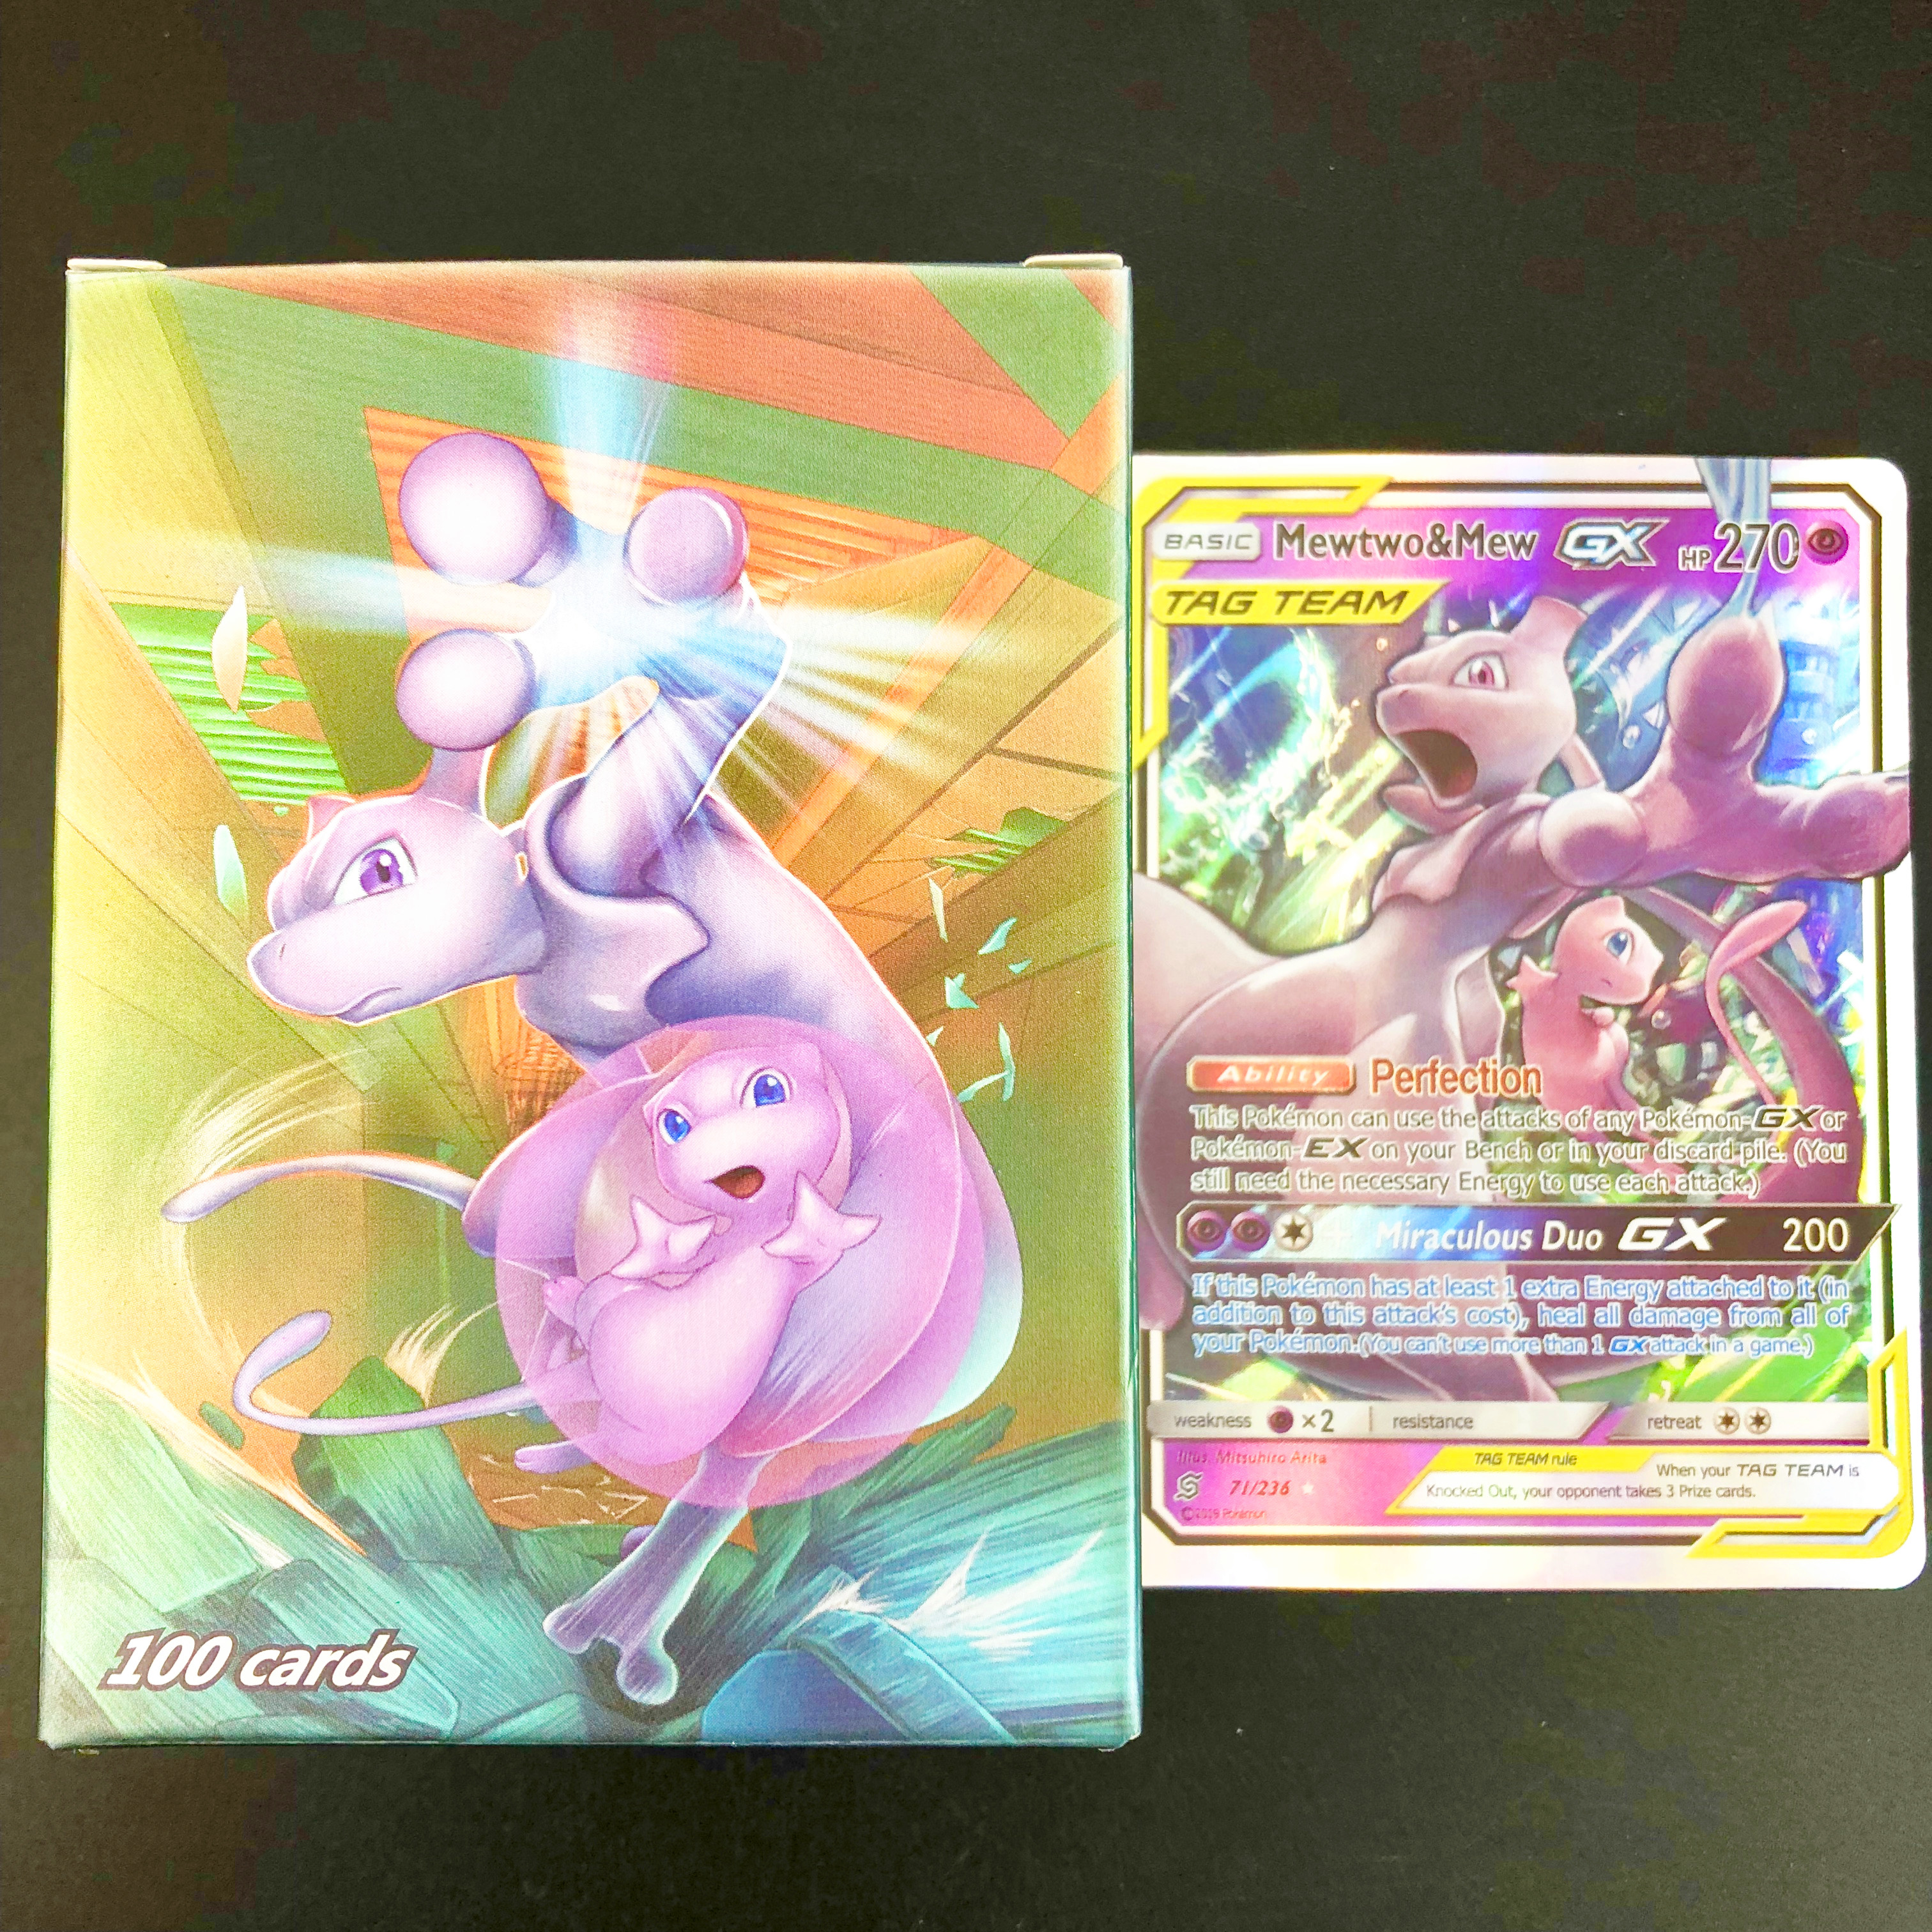 NEW TAG TEAM EX MEGA GX Trainer Shining Pokemon Cards Game Battle Carte Trading English  Cards Kids Toys Gifts